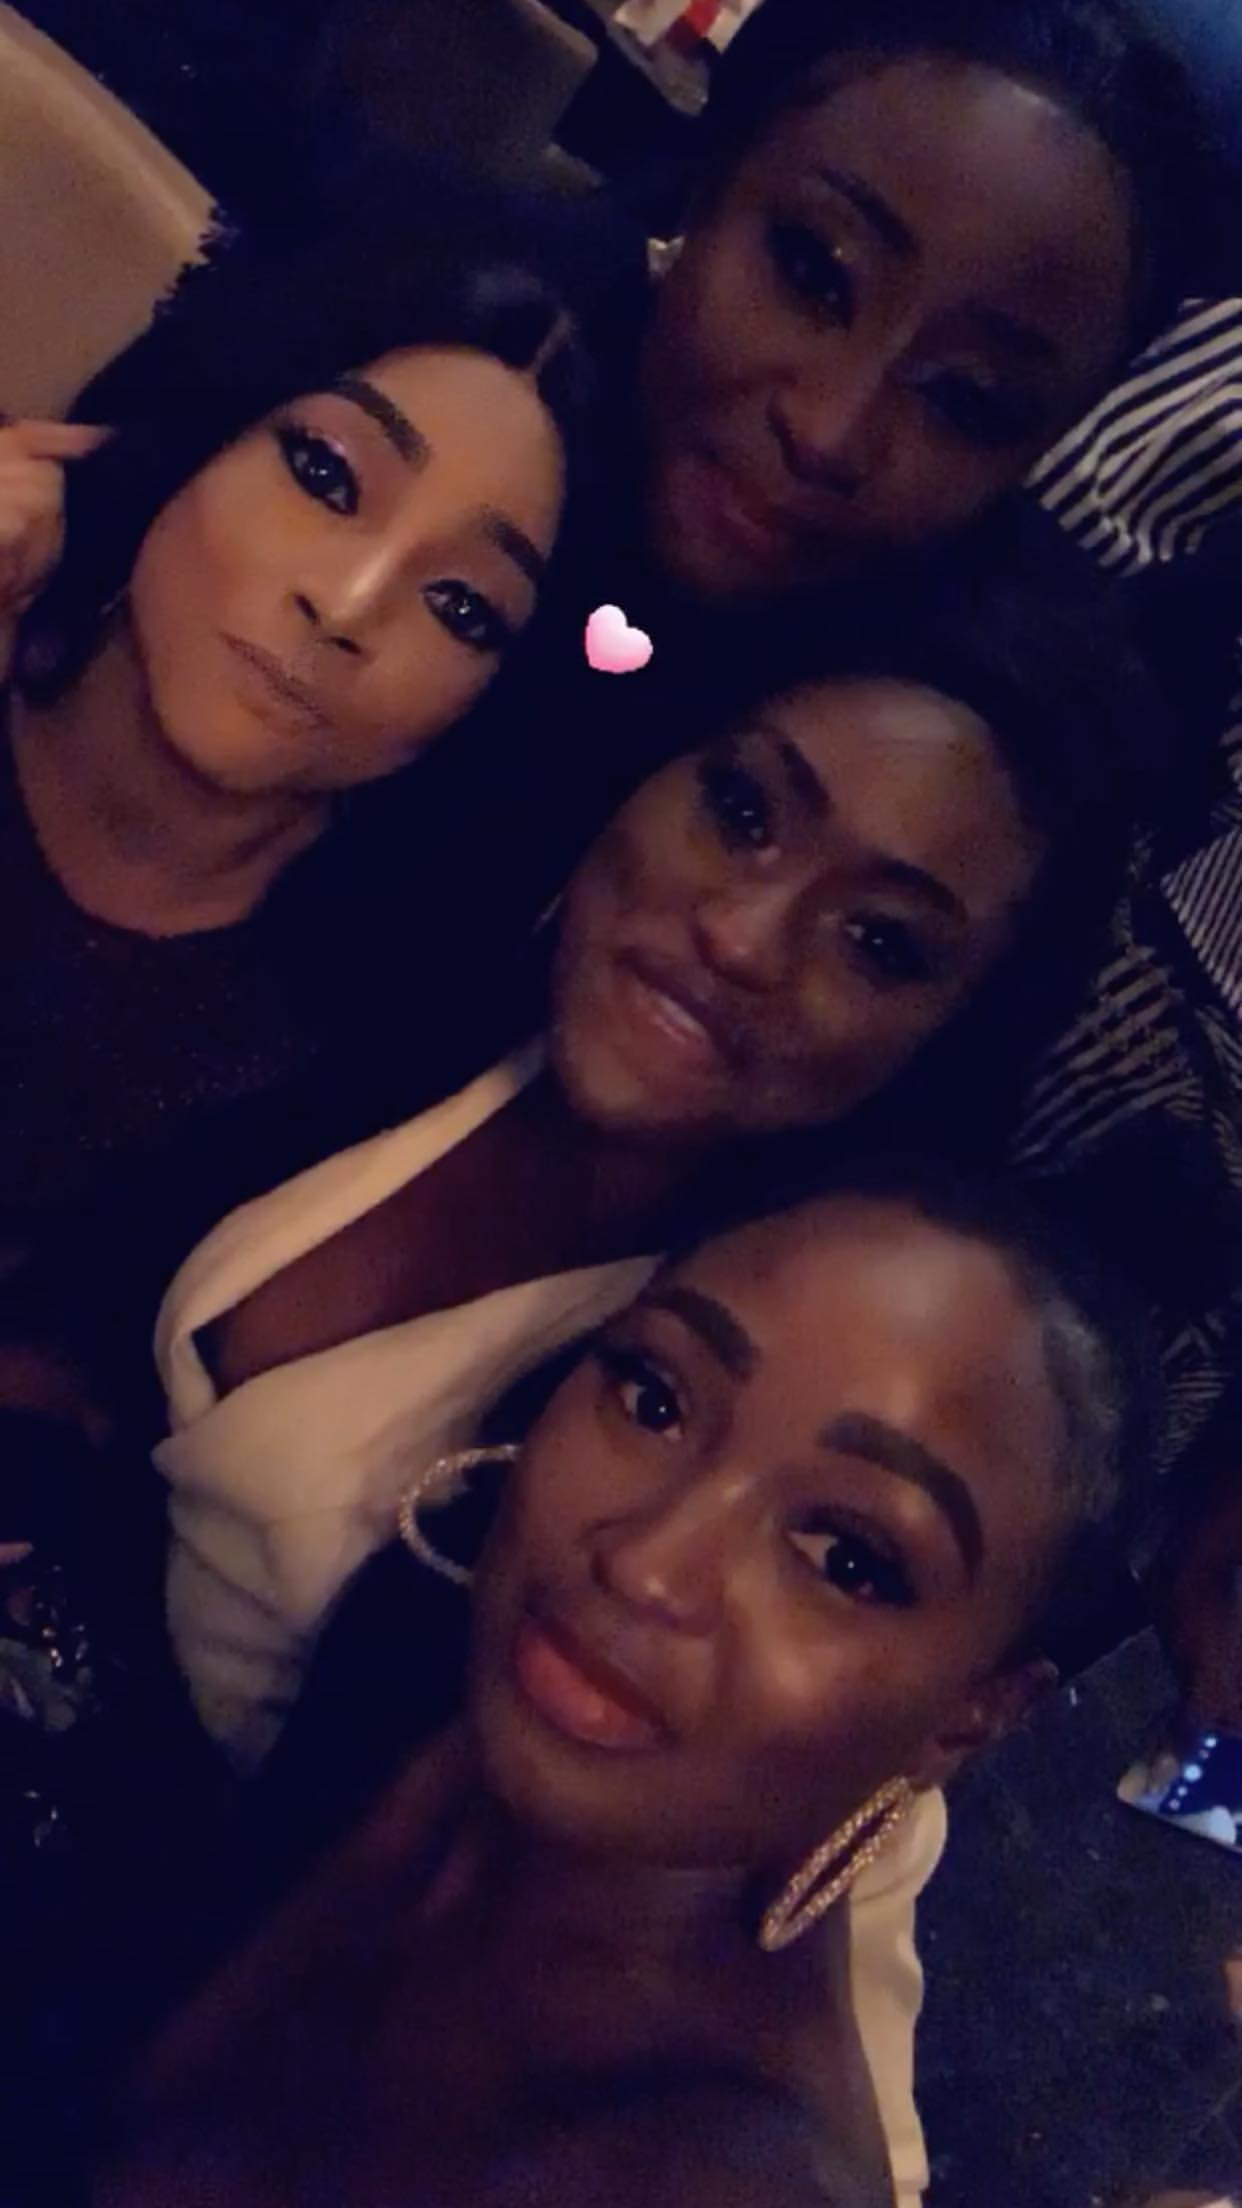 Ini Edo's Birthday Party was a Fun Girls Night Out with Toke Makinwa, Chika Ike, Mercy Aigbe, Shaffy Bello